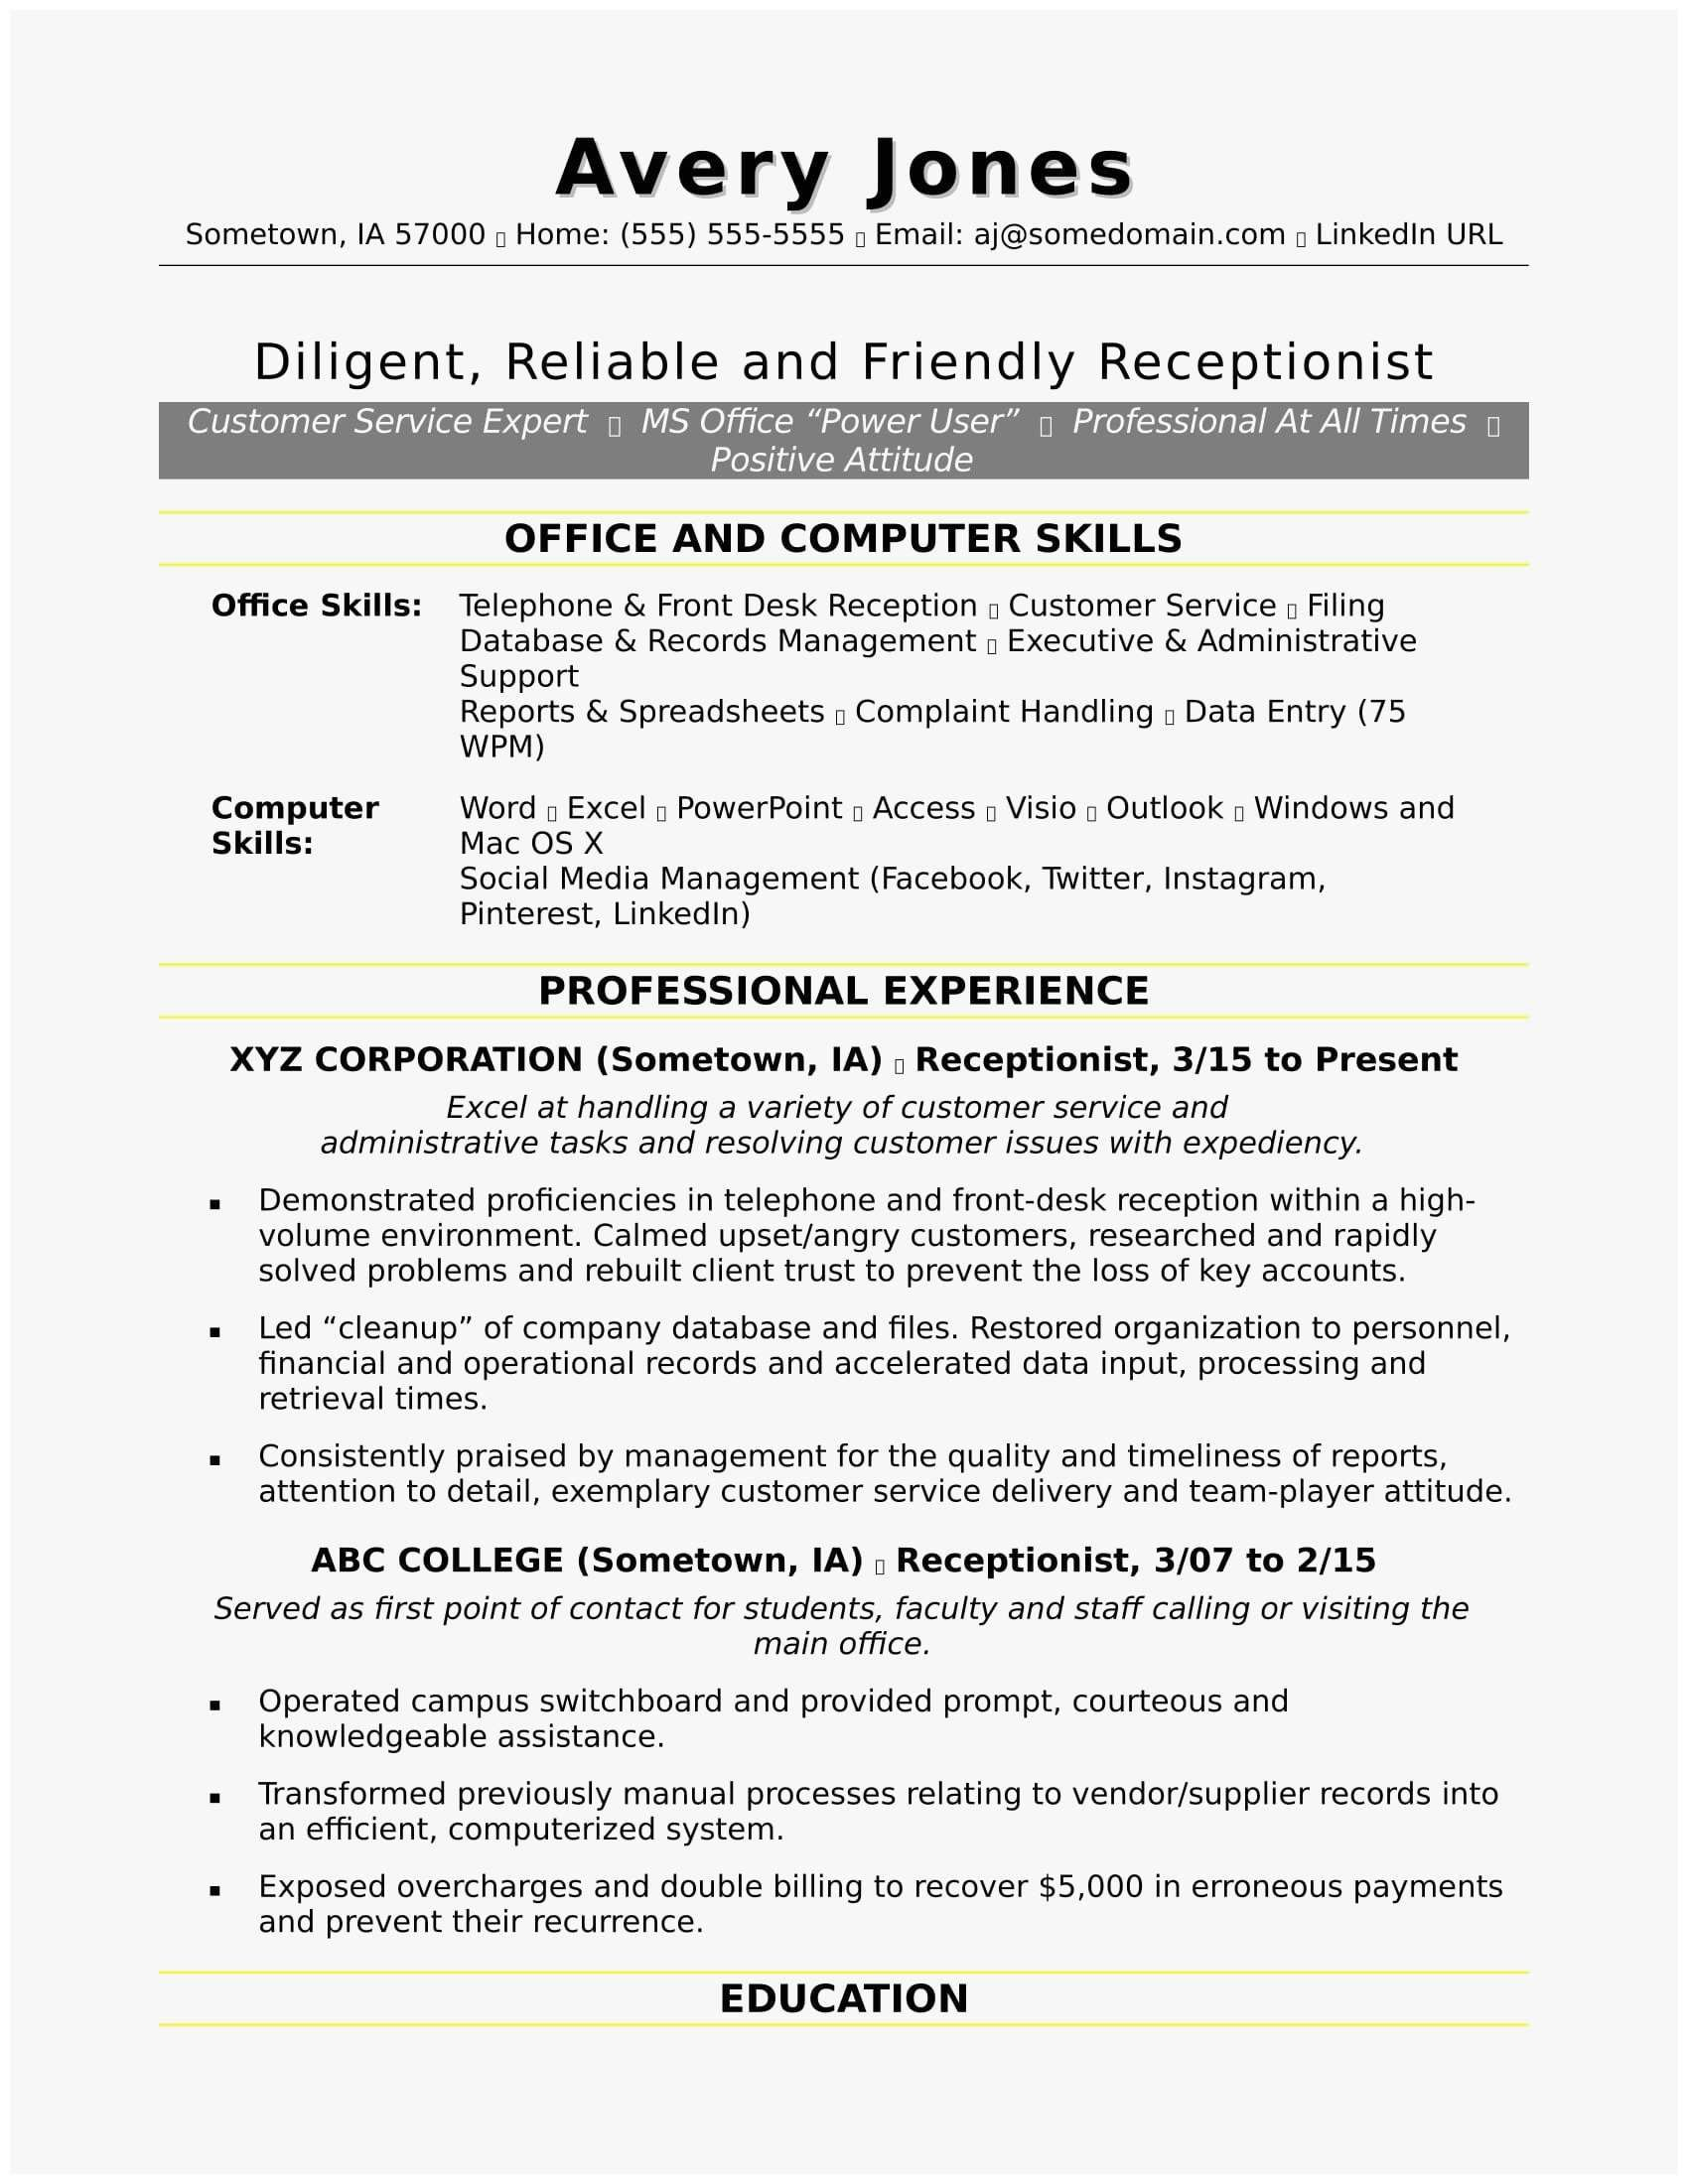 Social Media Resume Example Luxury 81 Admirable Graph Describe Your Puter Skills Resume Examples Resume Skills Receptionist Jobs